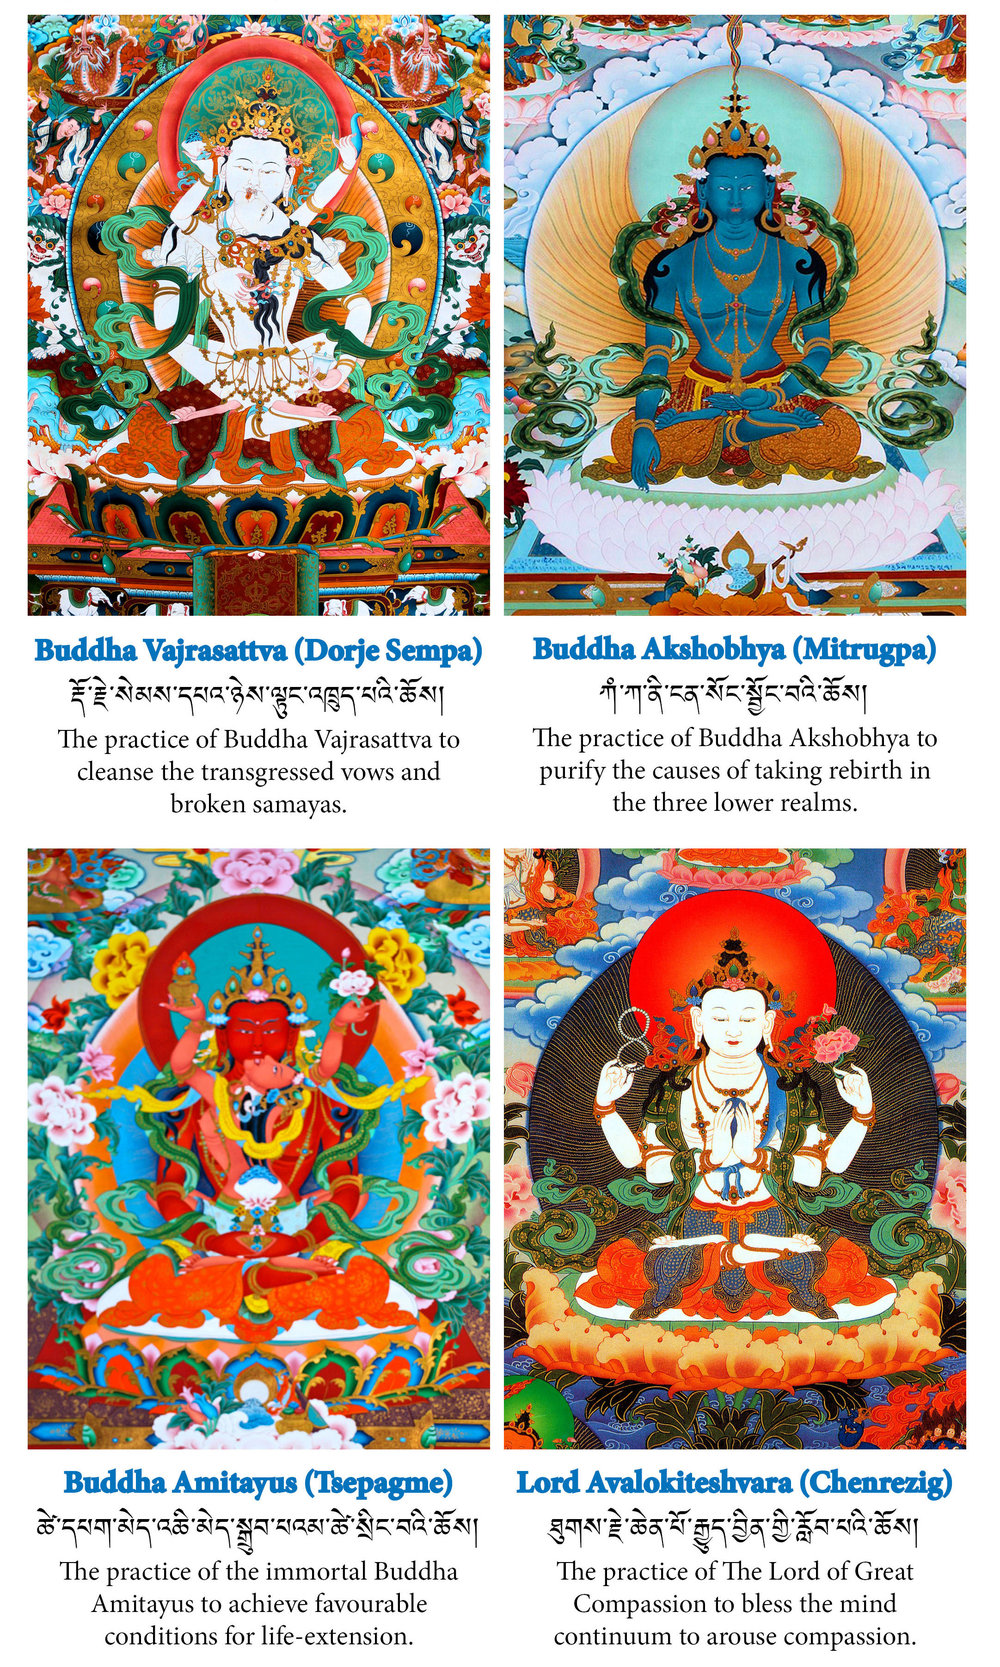 The 4 Deities of Drukpa Kargyu.jpg